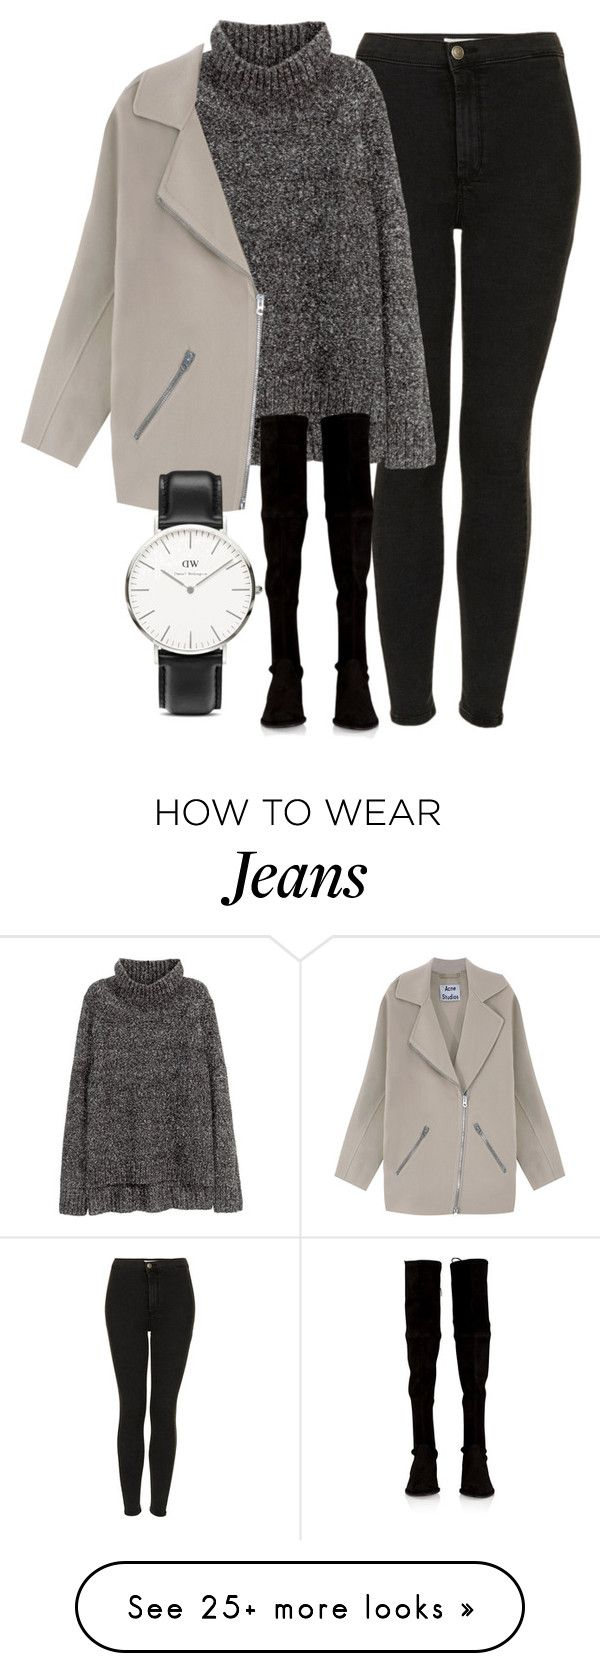 """Untitled #4522"" by laurenmboot on Polyvore featuring Topshop, H&M, Acne Studios, Stuart Weitzman and Daniel Wellington"